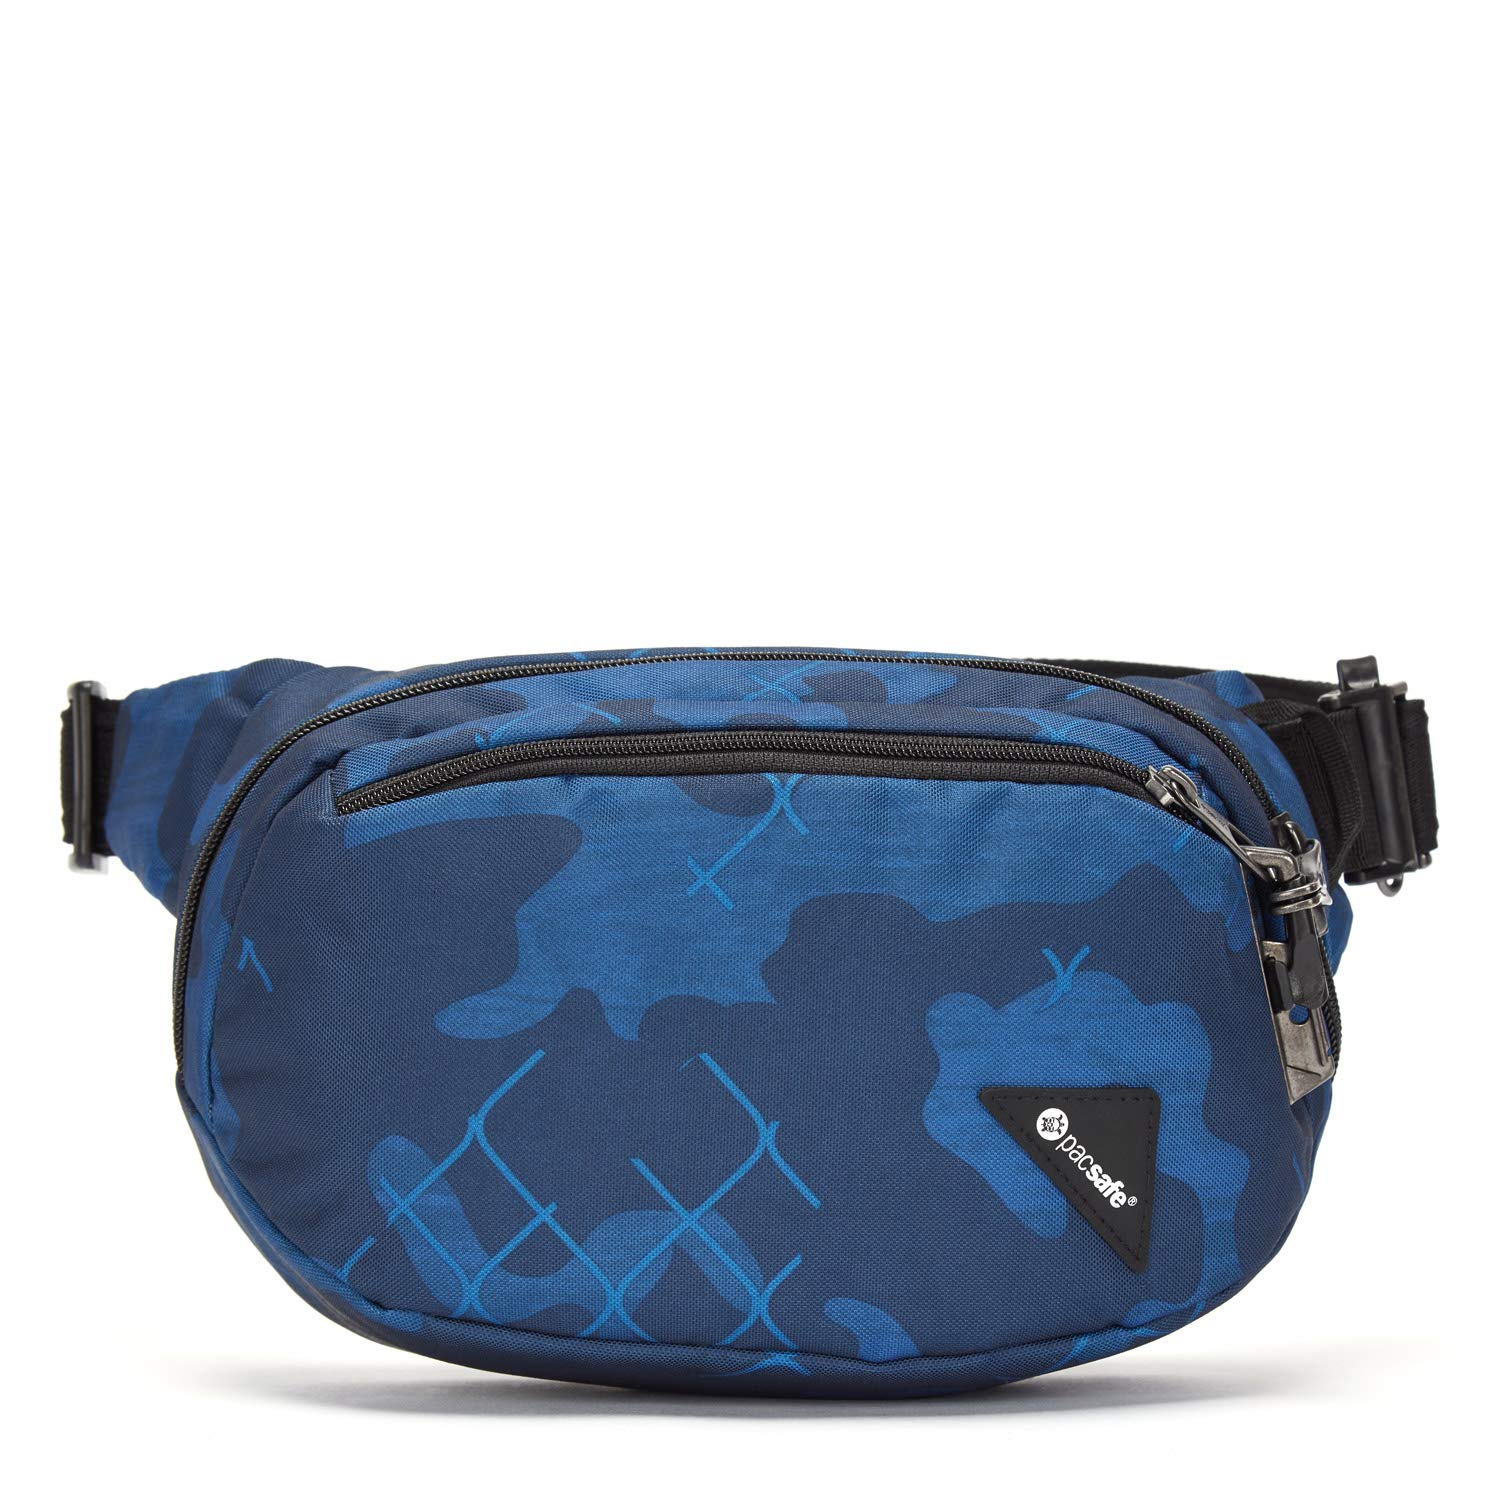 Pacsafe Vibe 100 4 Liter Anti Theft Fanny Pack-Fits 7 inch Tablet Luggage- Messenger Bag, Blue Camo,